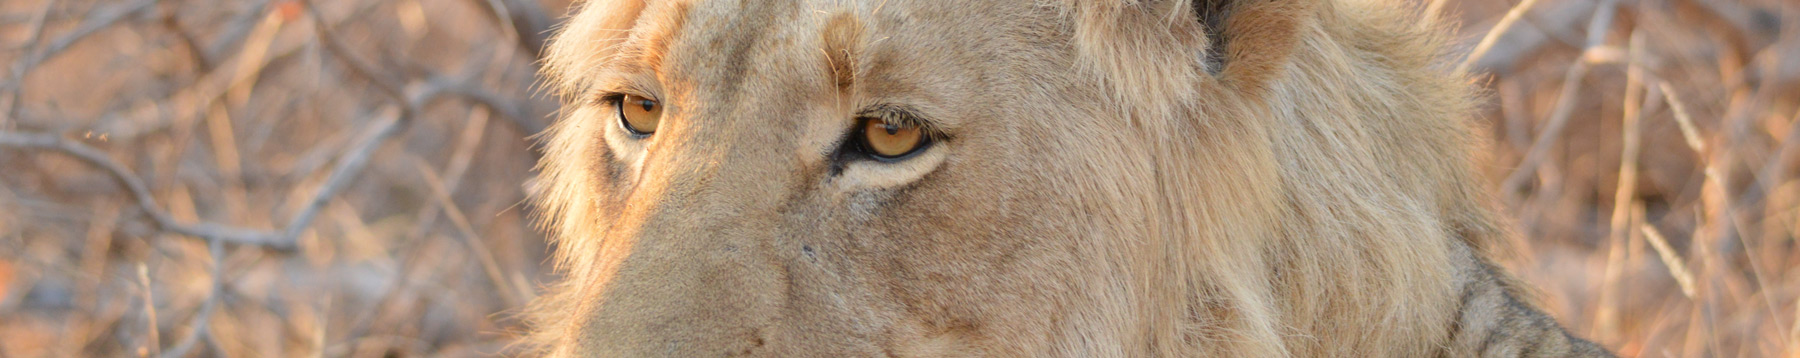 Male Lion Eyes photographed during a wildlife safari at Naledi Game Lodge